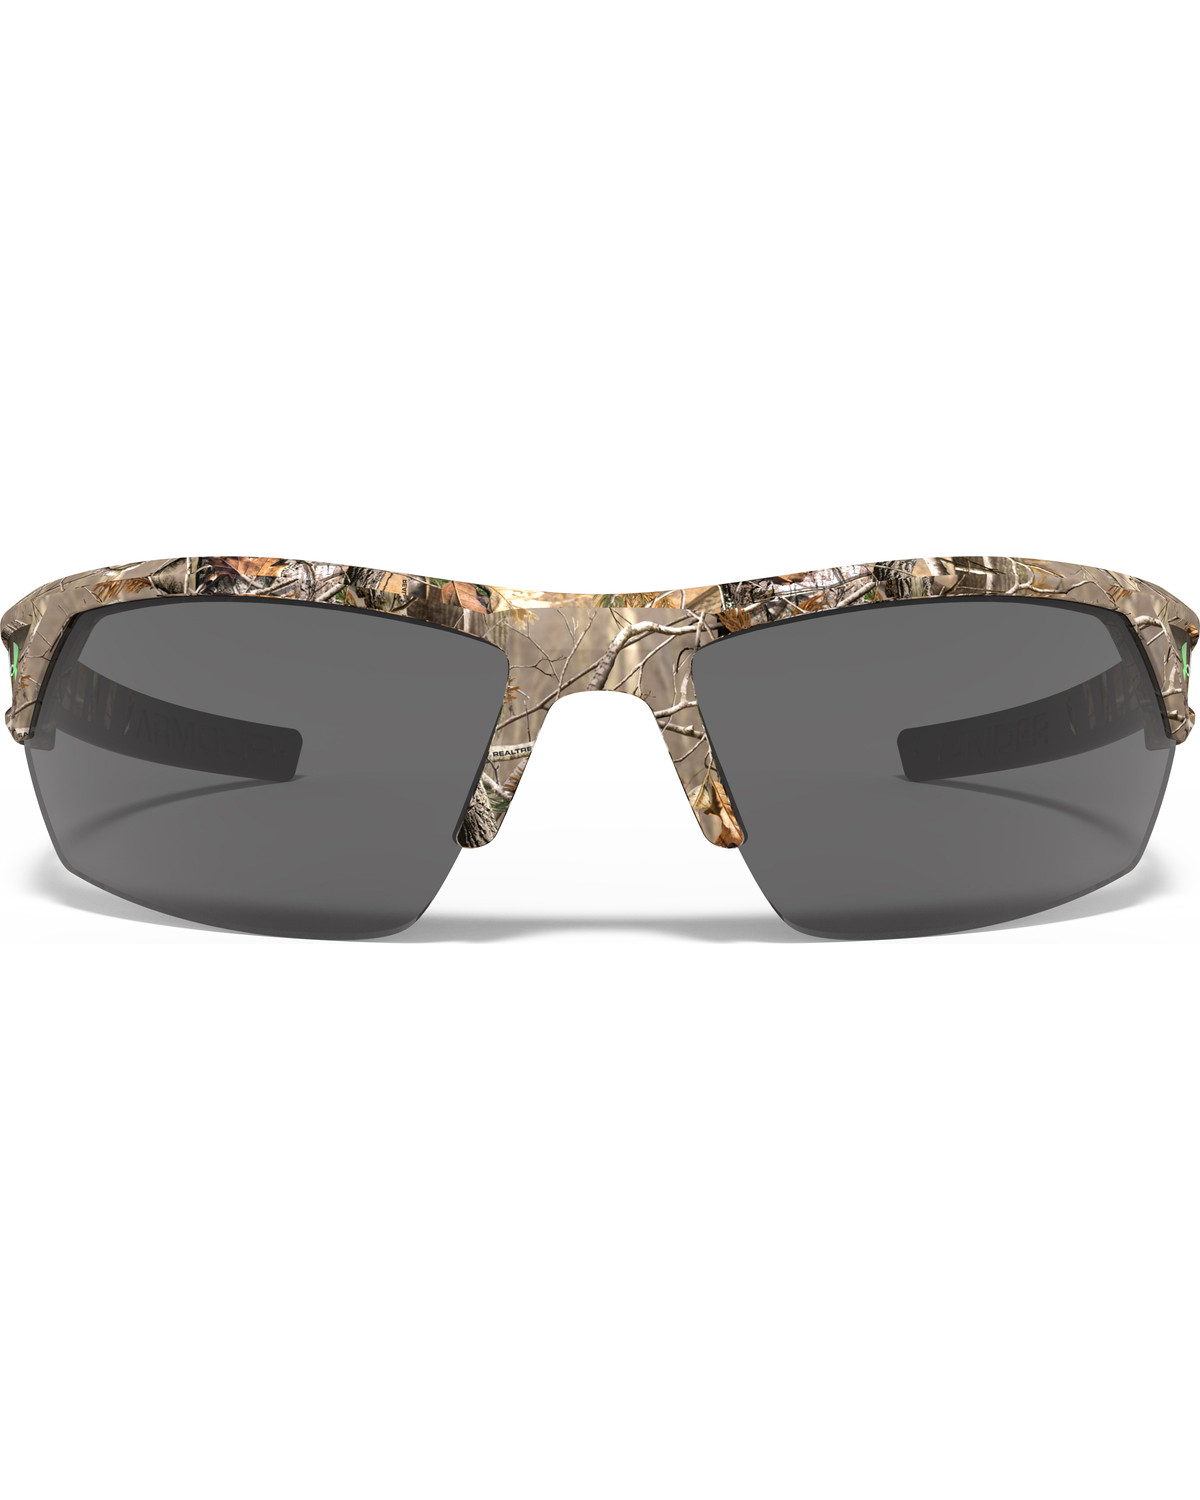 41d6be4cdcf Under Armour Realtree Camo Igniter 2.0 Sunglasses